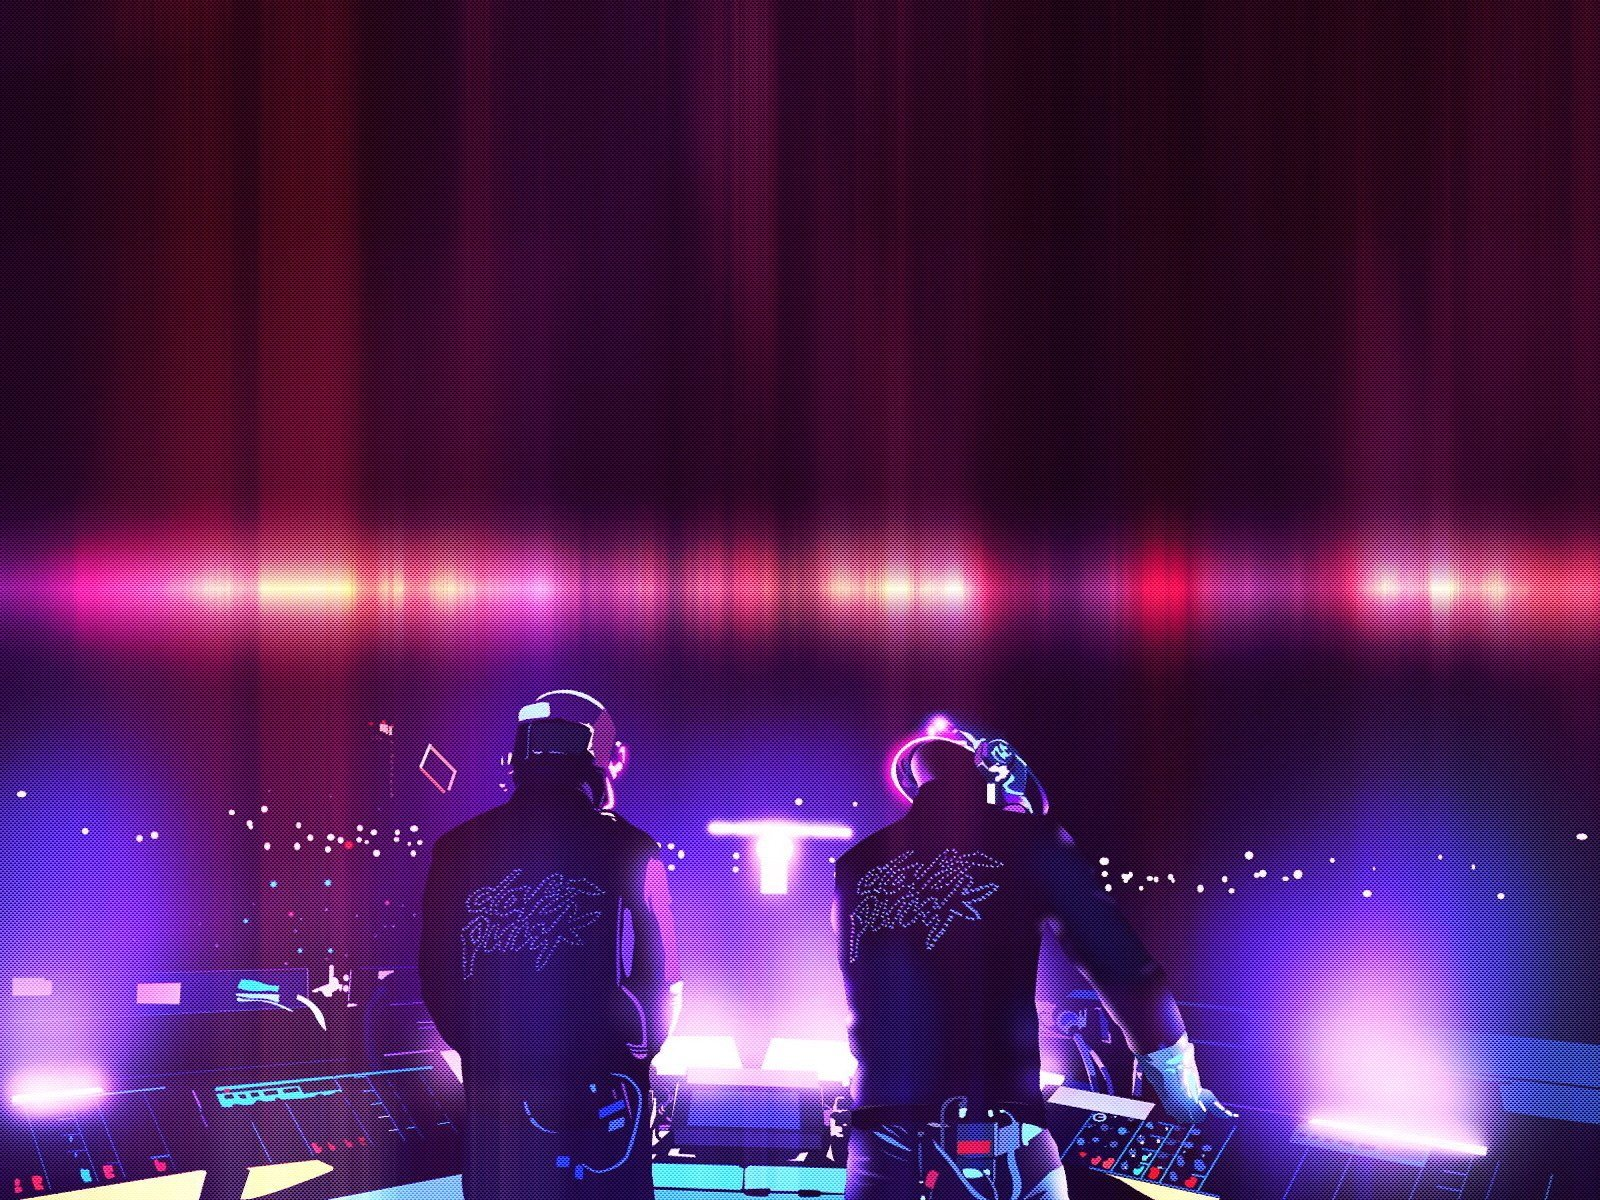 Daft Punk Live Concert Wallpaper wallpapers55com   Best Wallpapers 1600x1200